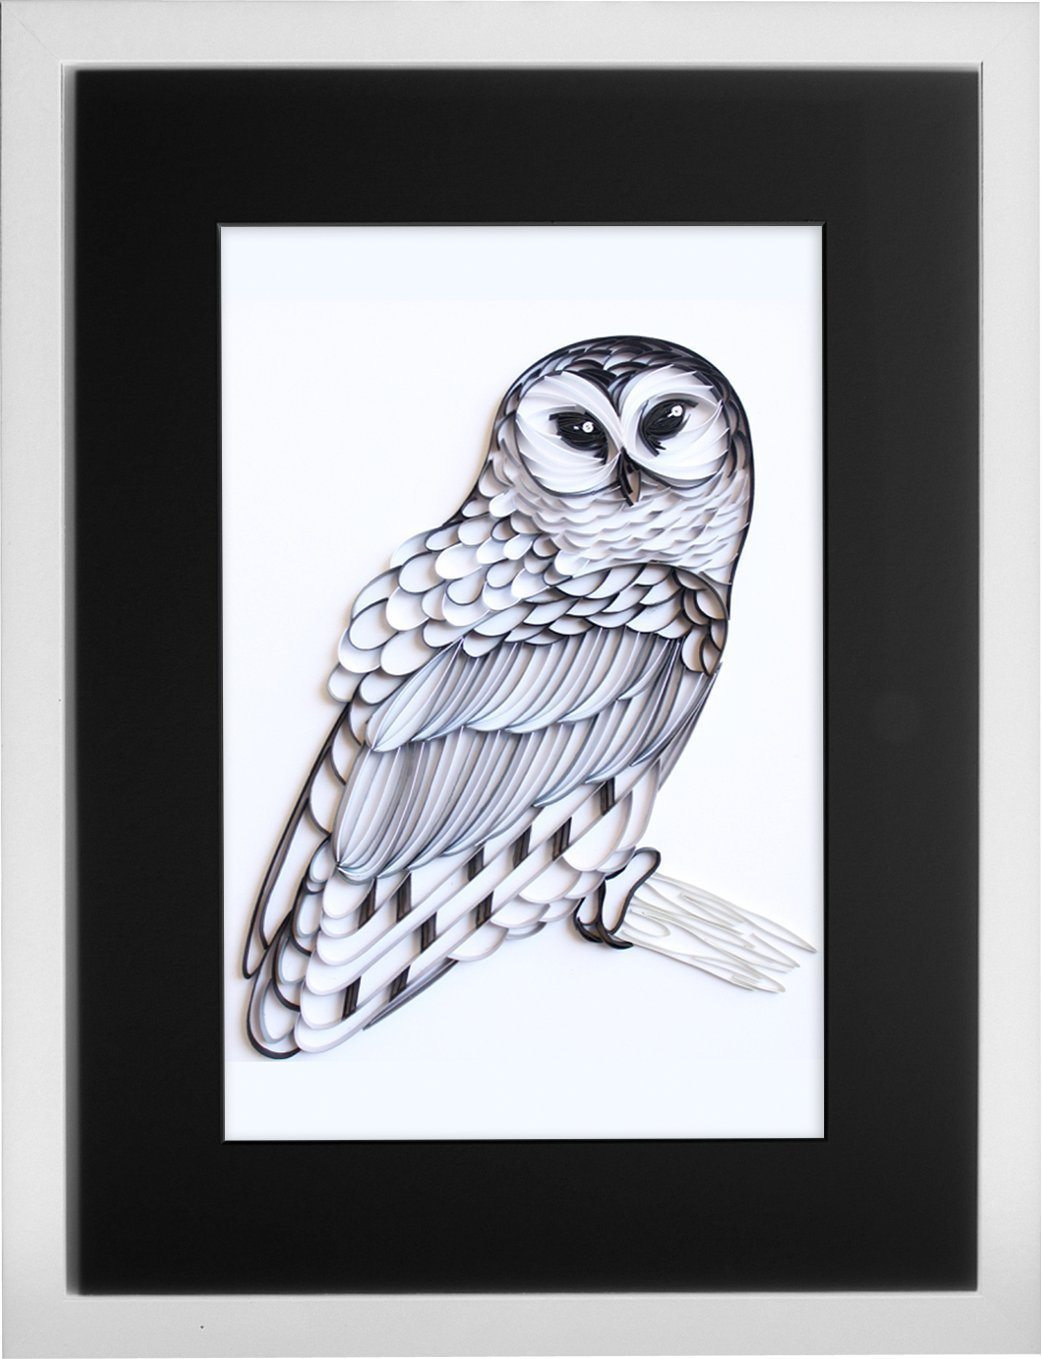 The Barred Owl - Modern Paper Quilled Wall Art for Home Decor (one of a kind paper quilling handcrafted piece made with love by an artist in California)